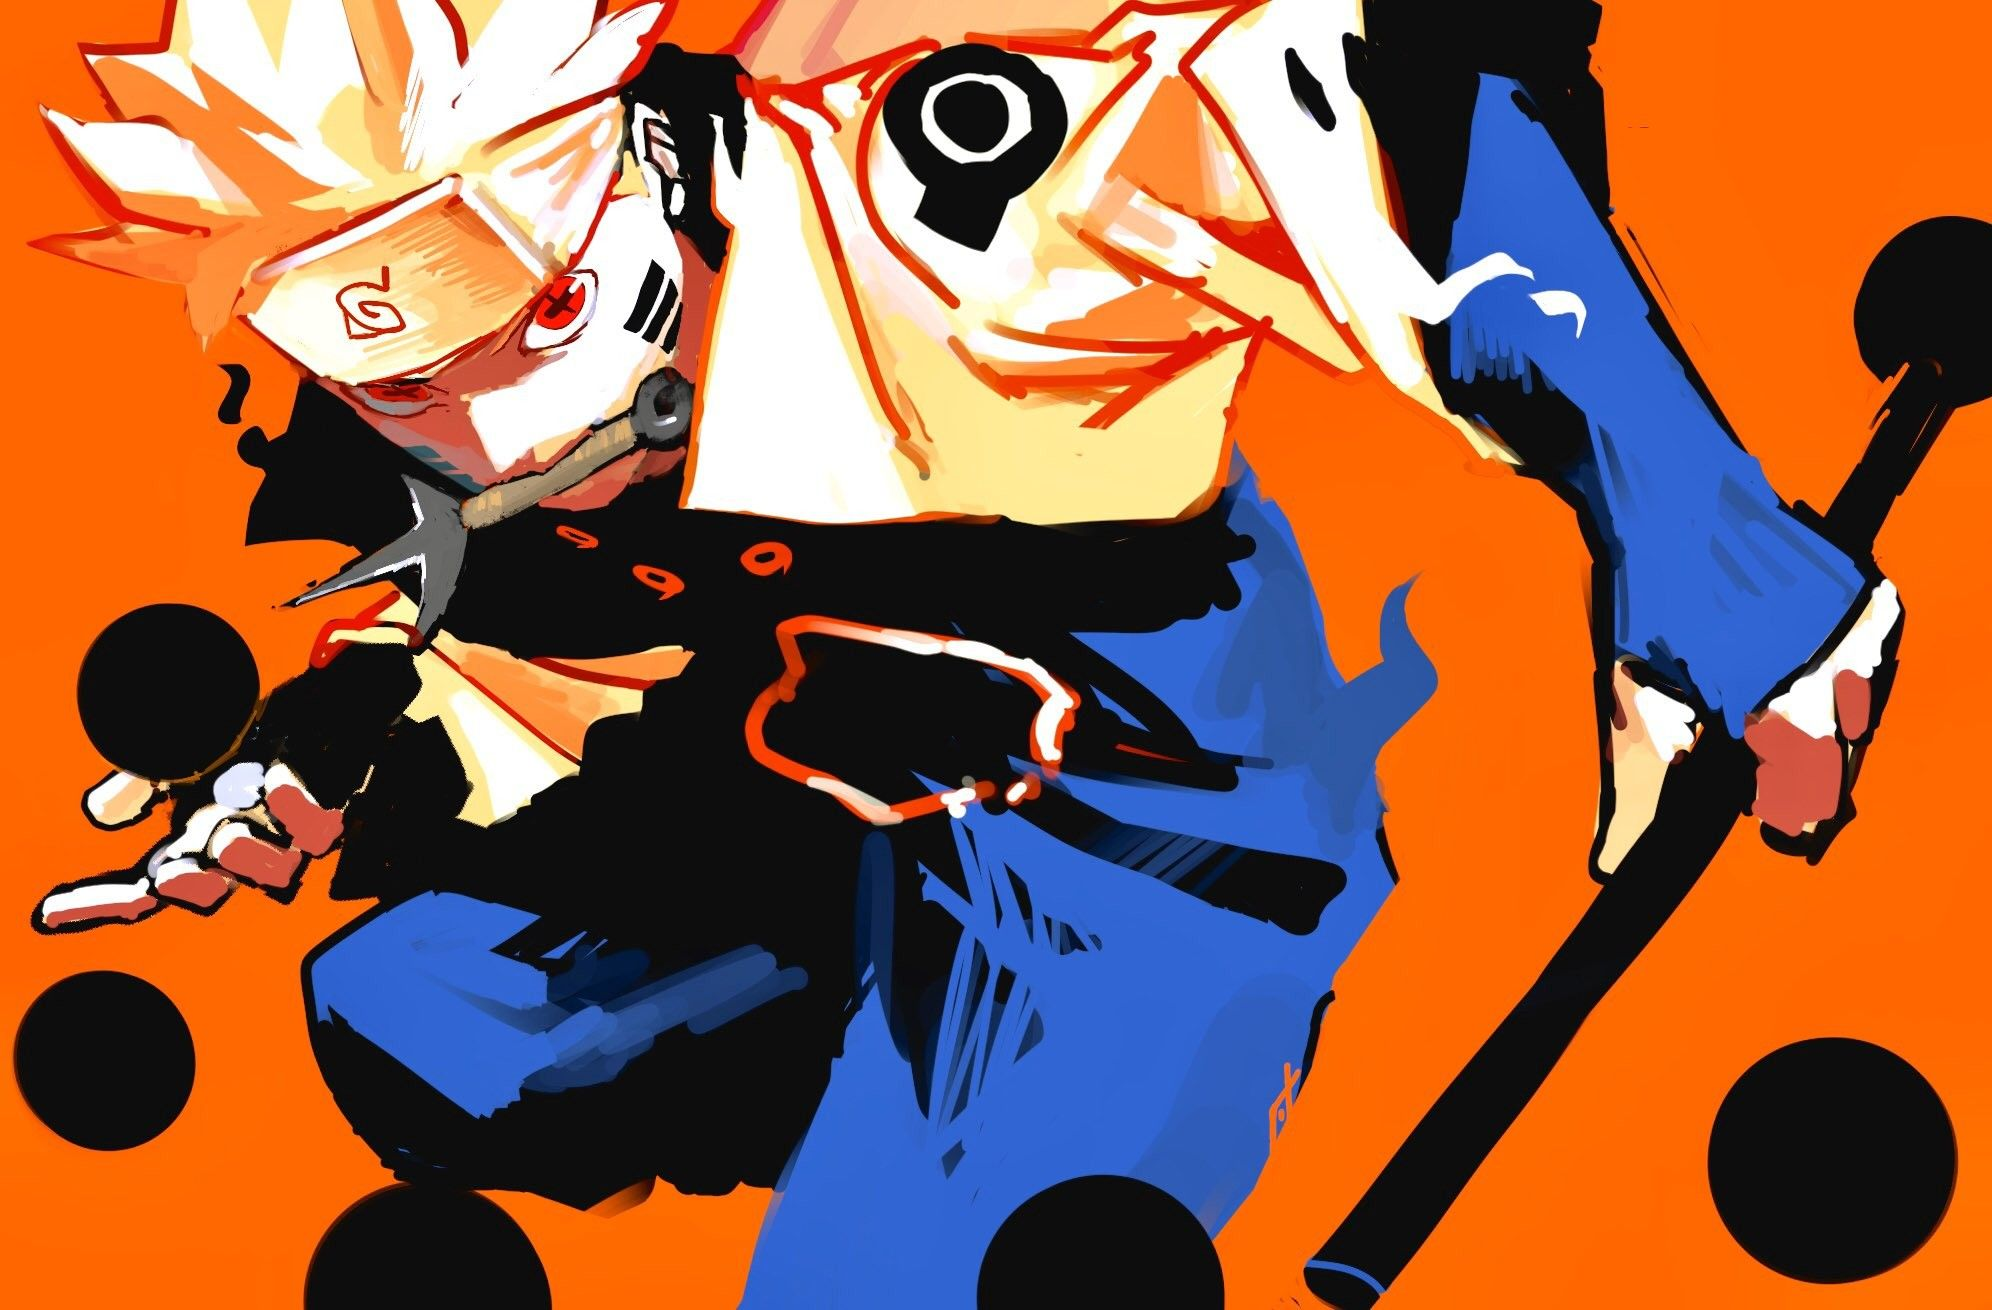 Pin by Kkjad21 on Naruto/Naruto Shippūden (ナルト 疾風伝) in